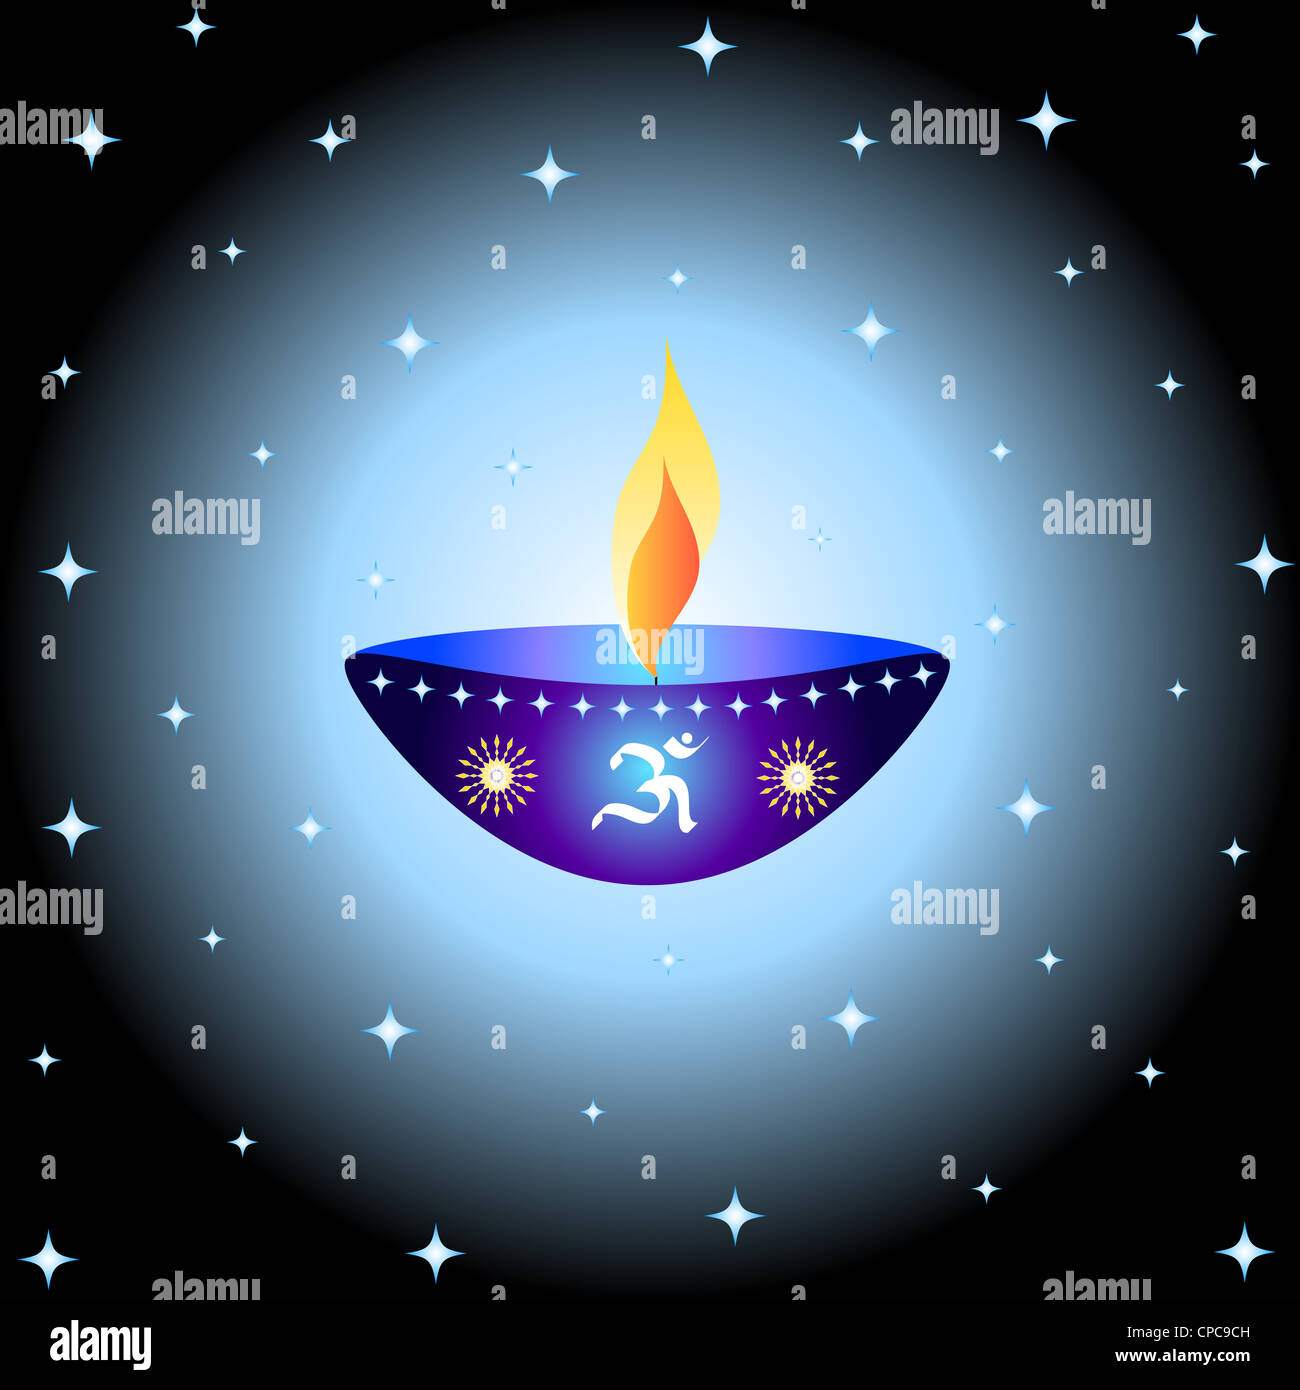 Indian festival Diwali lamp with OM symbol Stock Photo